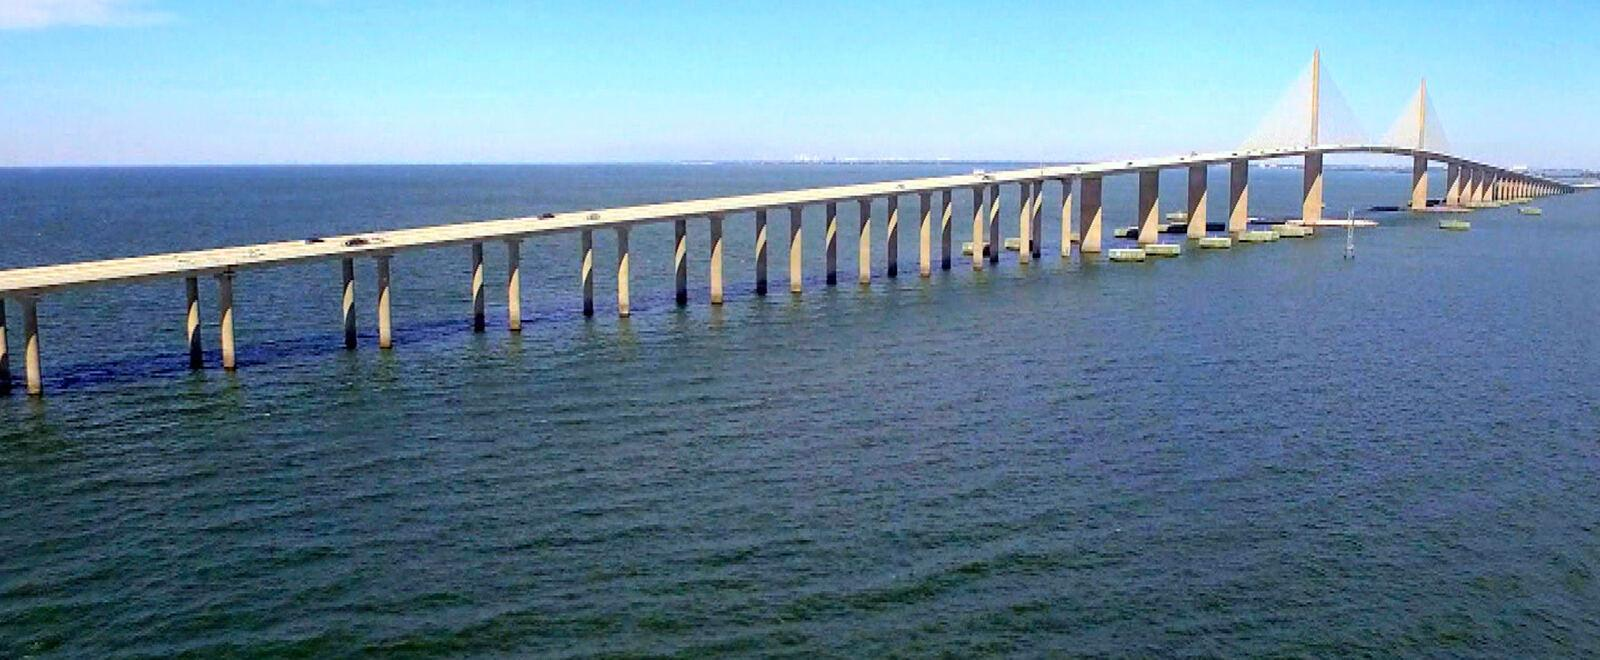 GIANT CONSTRUCTIONS - THE WORLD'S MOST SPECTACULAR BRIDGES